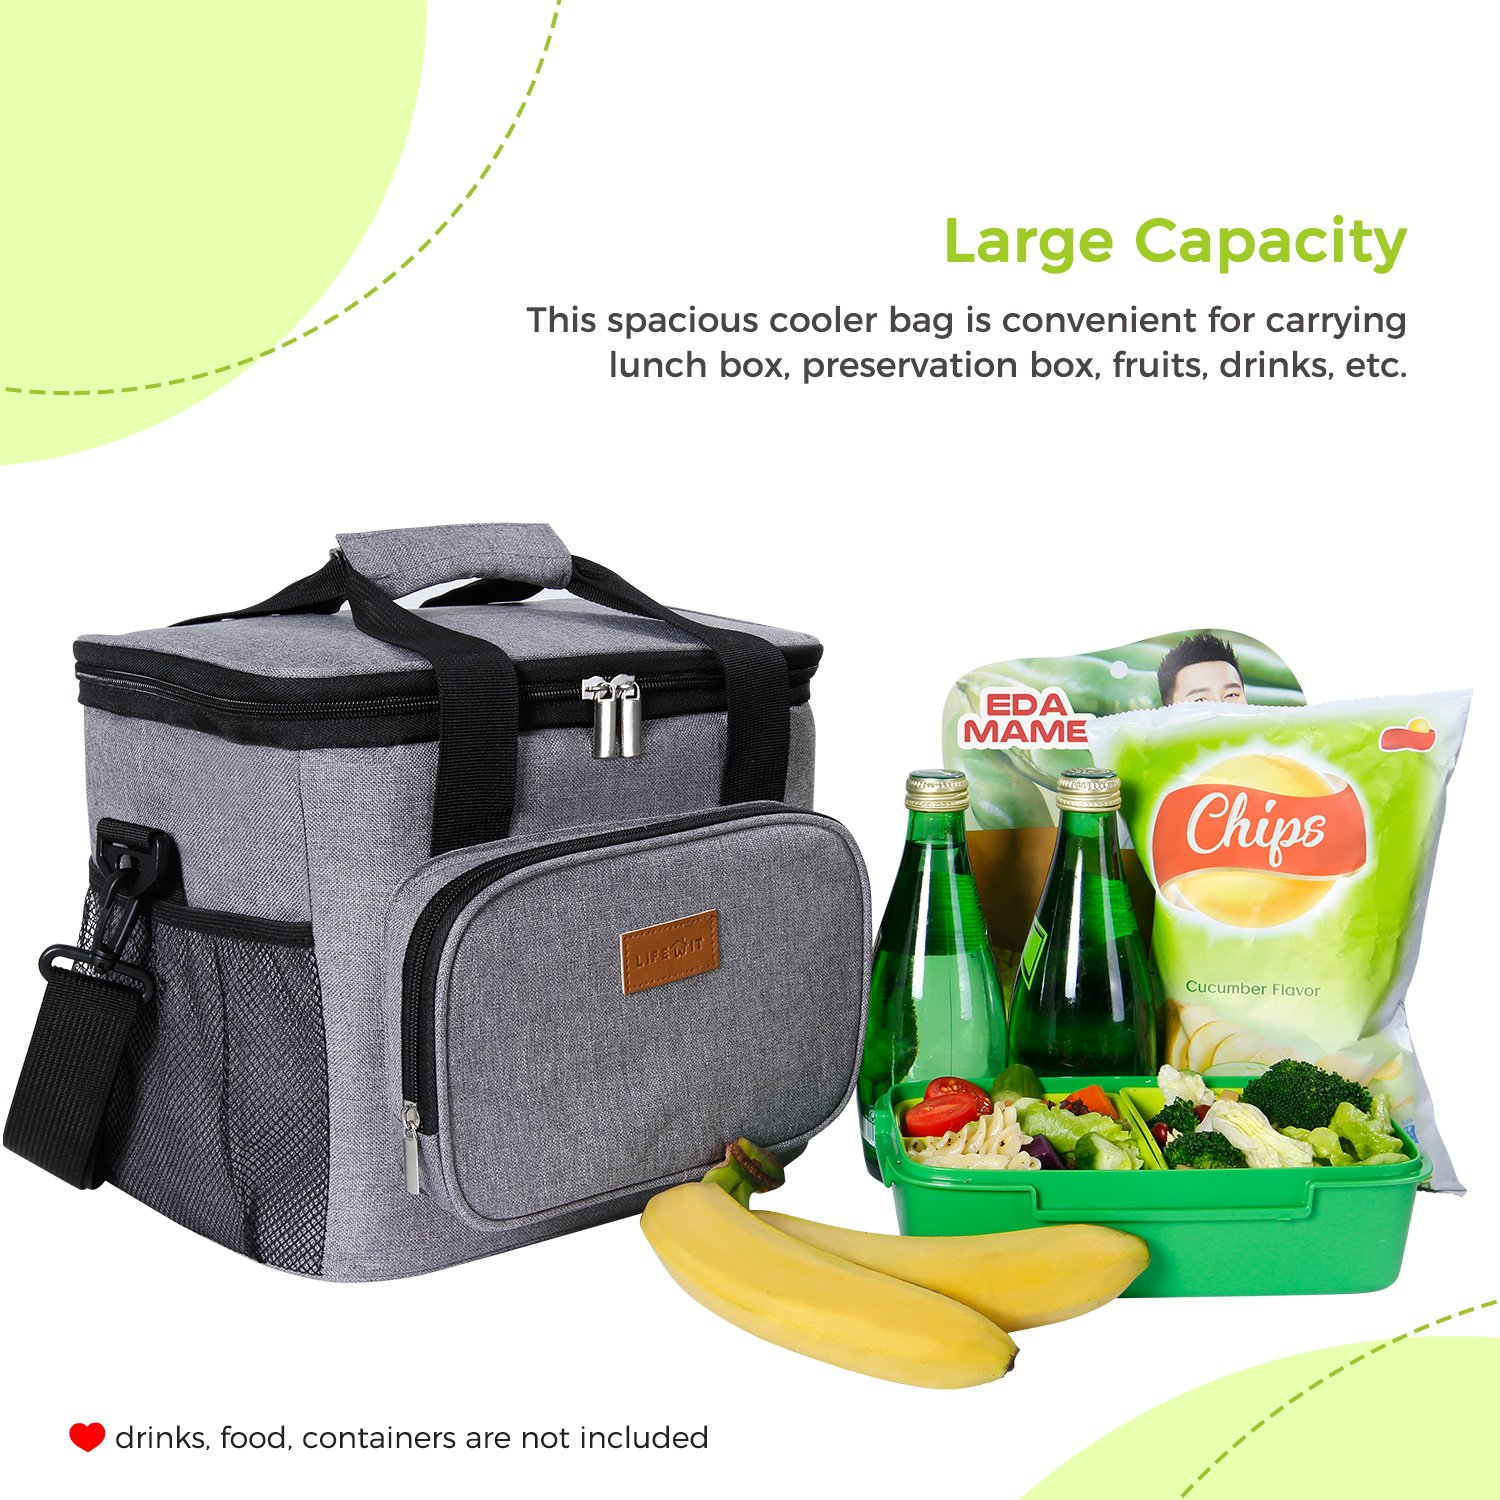 Lifewit 15L Insulated Lunch Box Bag Cooler Bag Storage for Beach//Picnic//Camping